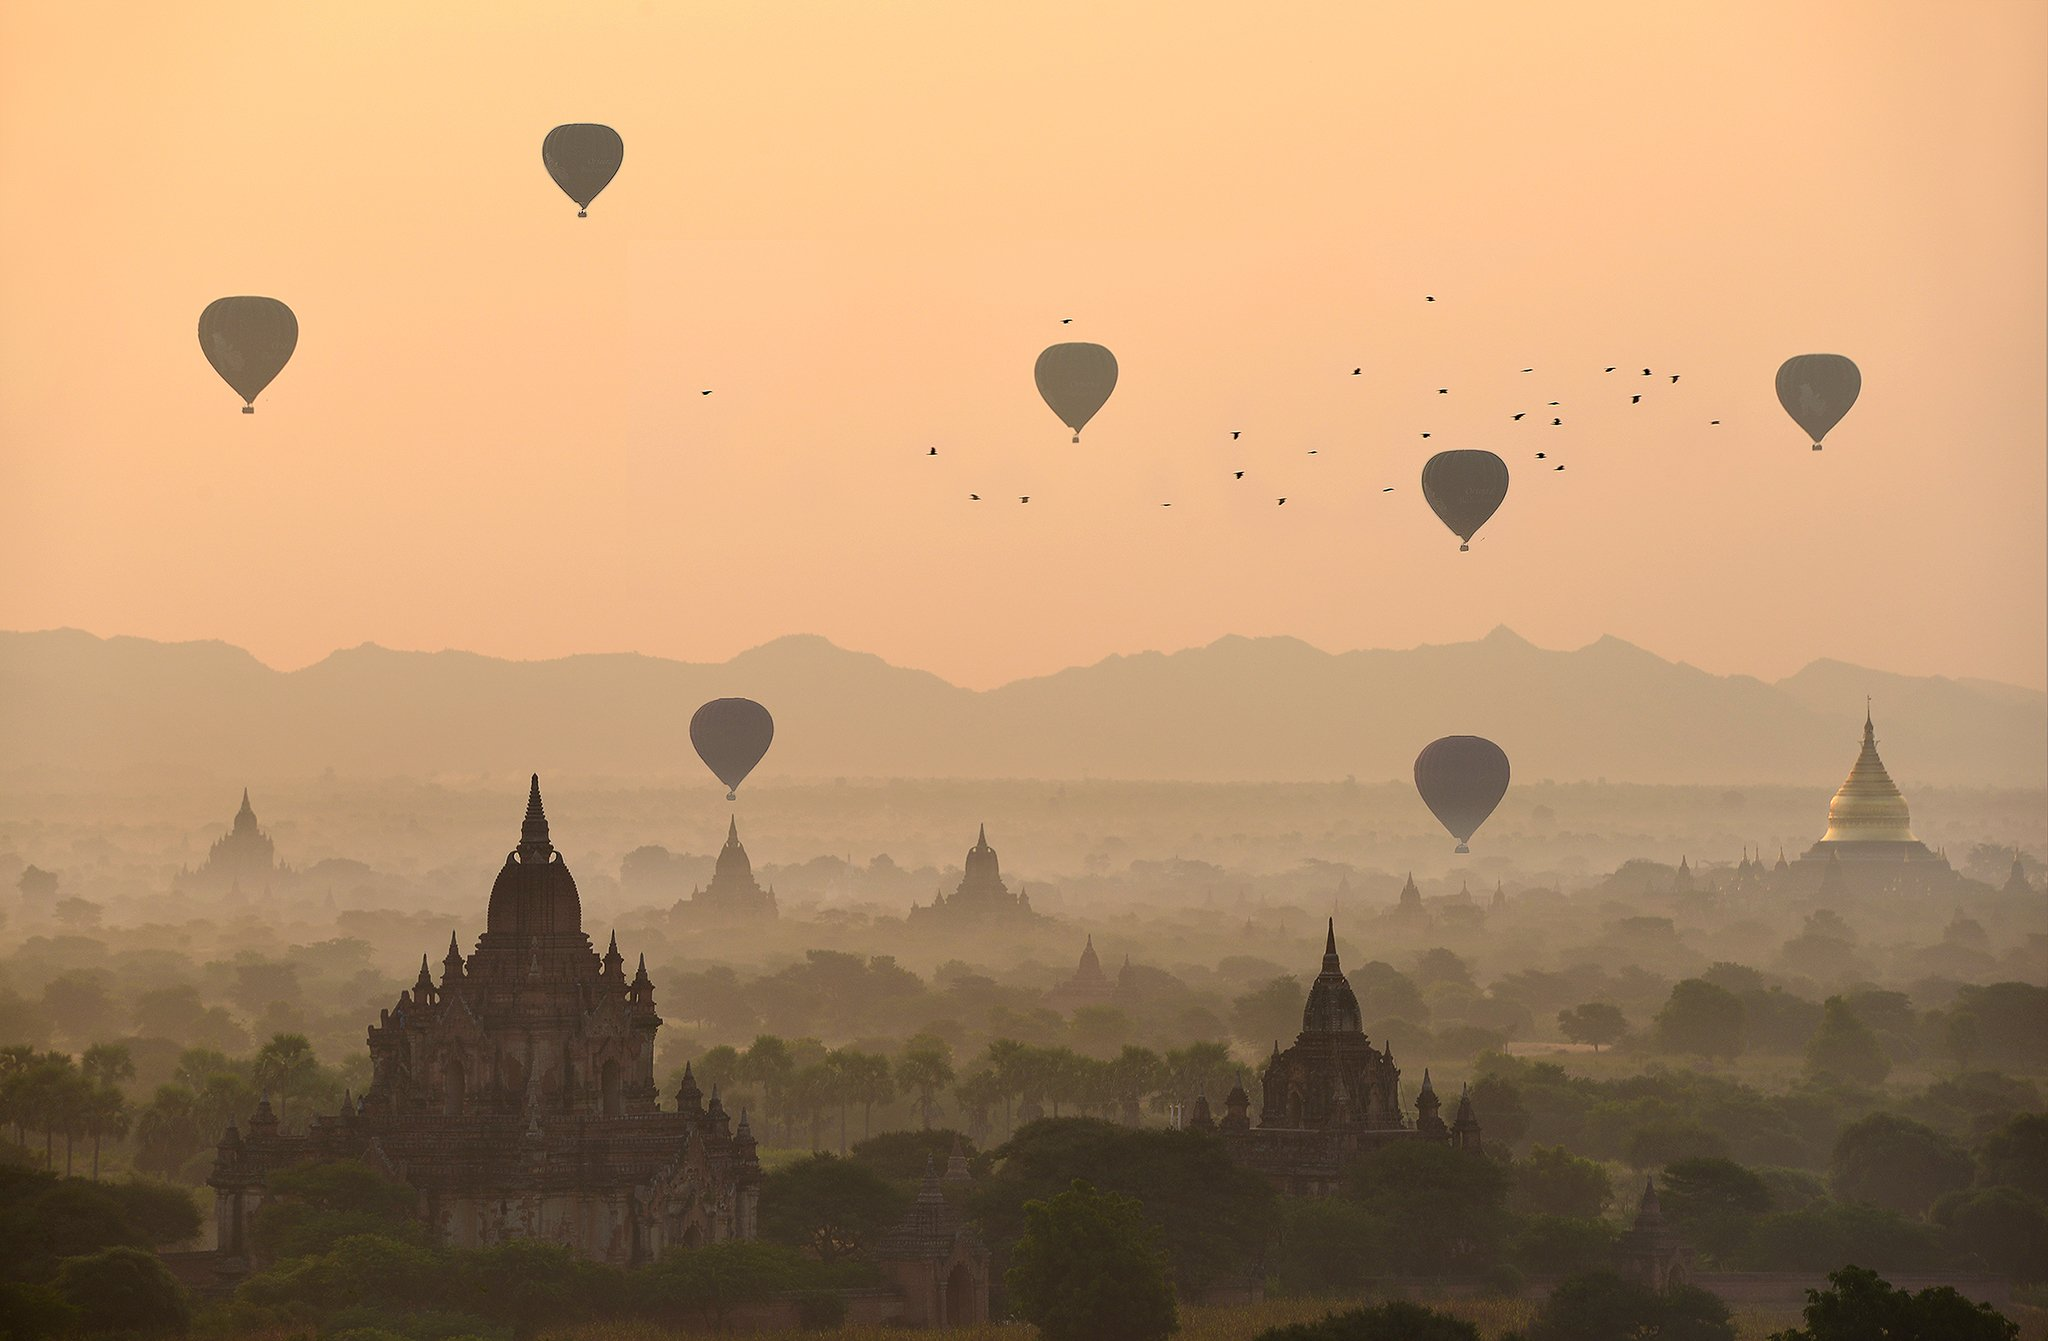 Adventure Ancient Architecture Bagan Built Structure Color Image Dawn Dusk Flying Fog Horizontal Hot Air Balloon Landscape Mandalay Division Mid-Air Myanmar Nature No People Old Ruin On The Move Orange Color Outdoors Photography Religion Scenics Silhouett, sarawut intarob